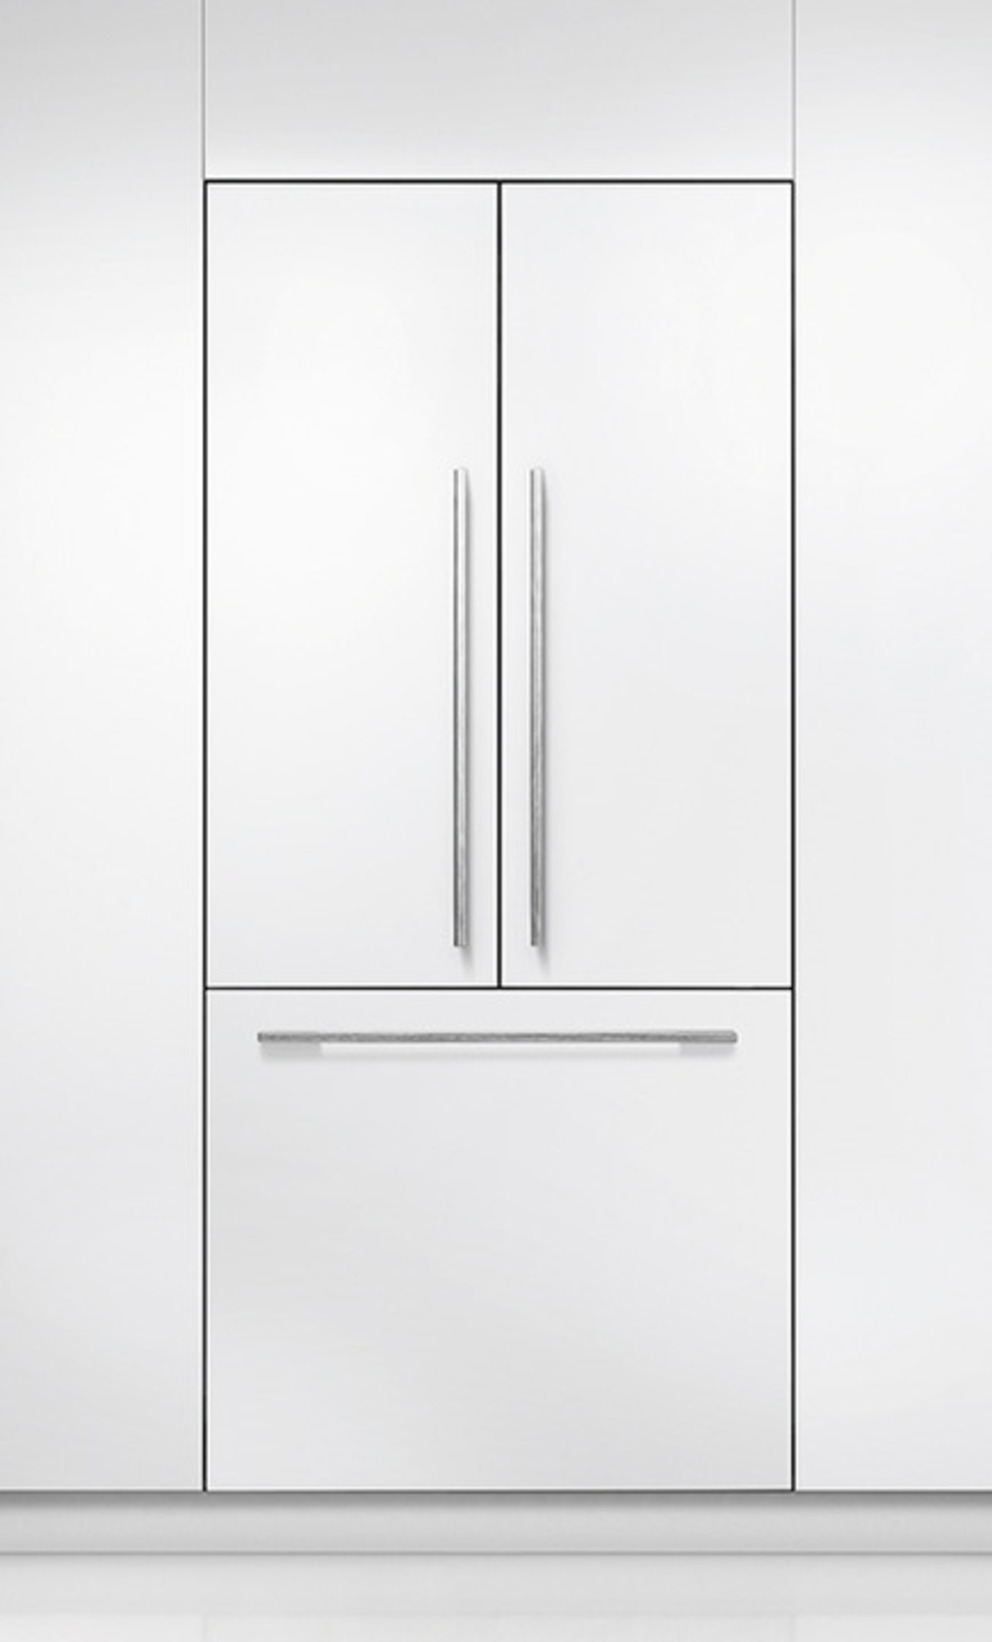 Réfrigérateurs Fisher&Paykel RS36A80J1 (84'' F&P)